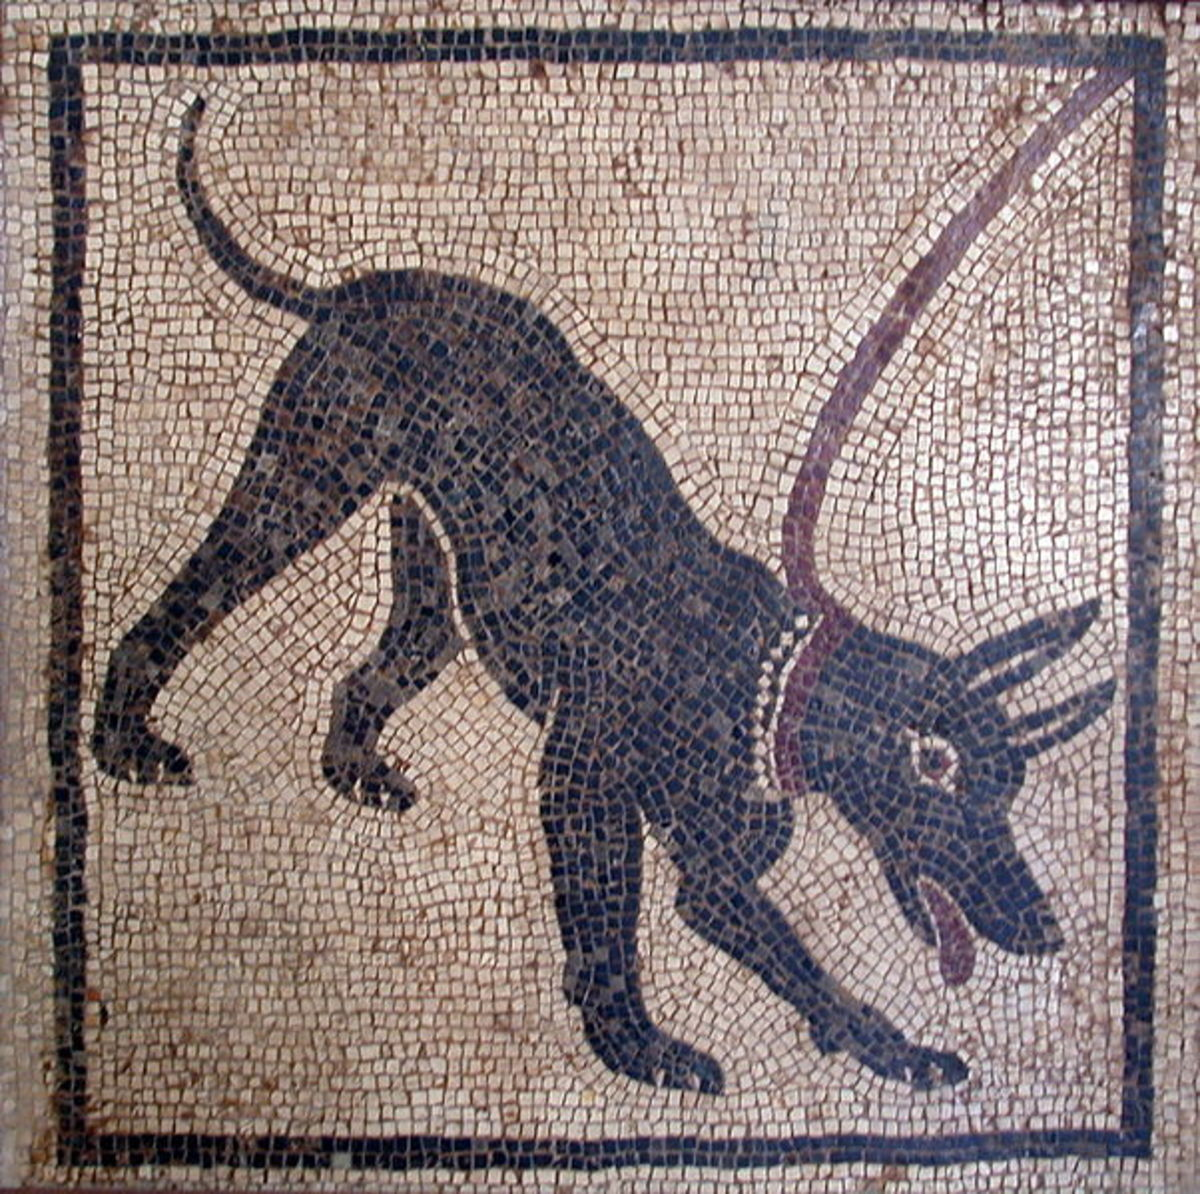 Cave Canum! A Roman mosaic from Pompeii on display at the Museo Archaelogico in Naples, Italy. Photographed by Massimo Finizio. Image Courtesy Wiki Commons